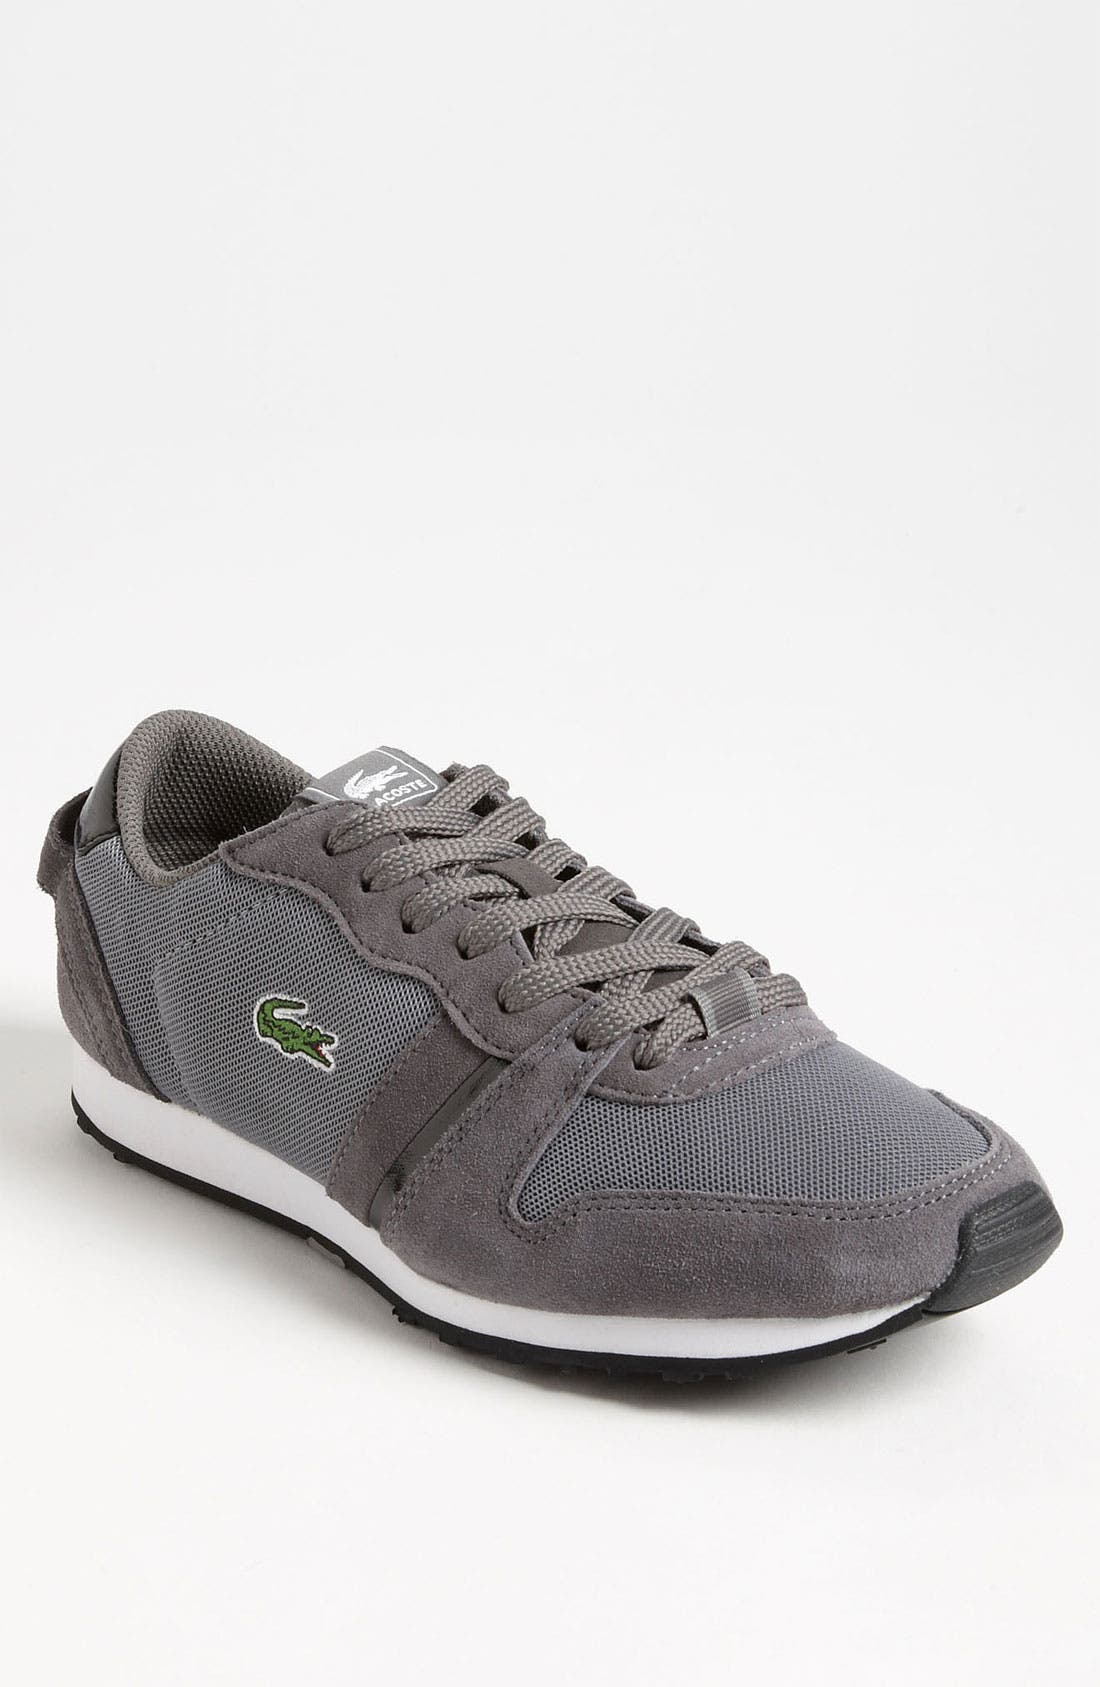 Alternate Image 1 Selected - Lacoste 'Tevere CRE' Sneaker